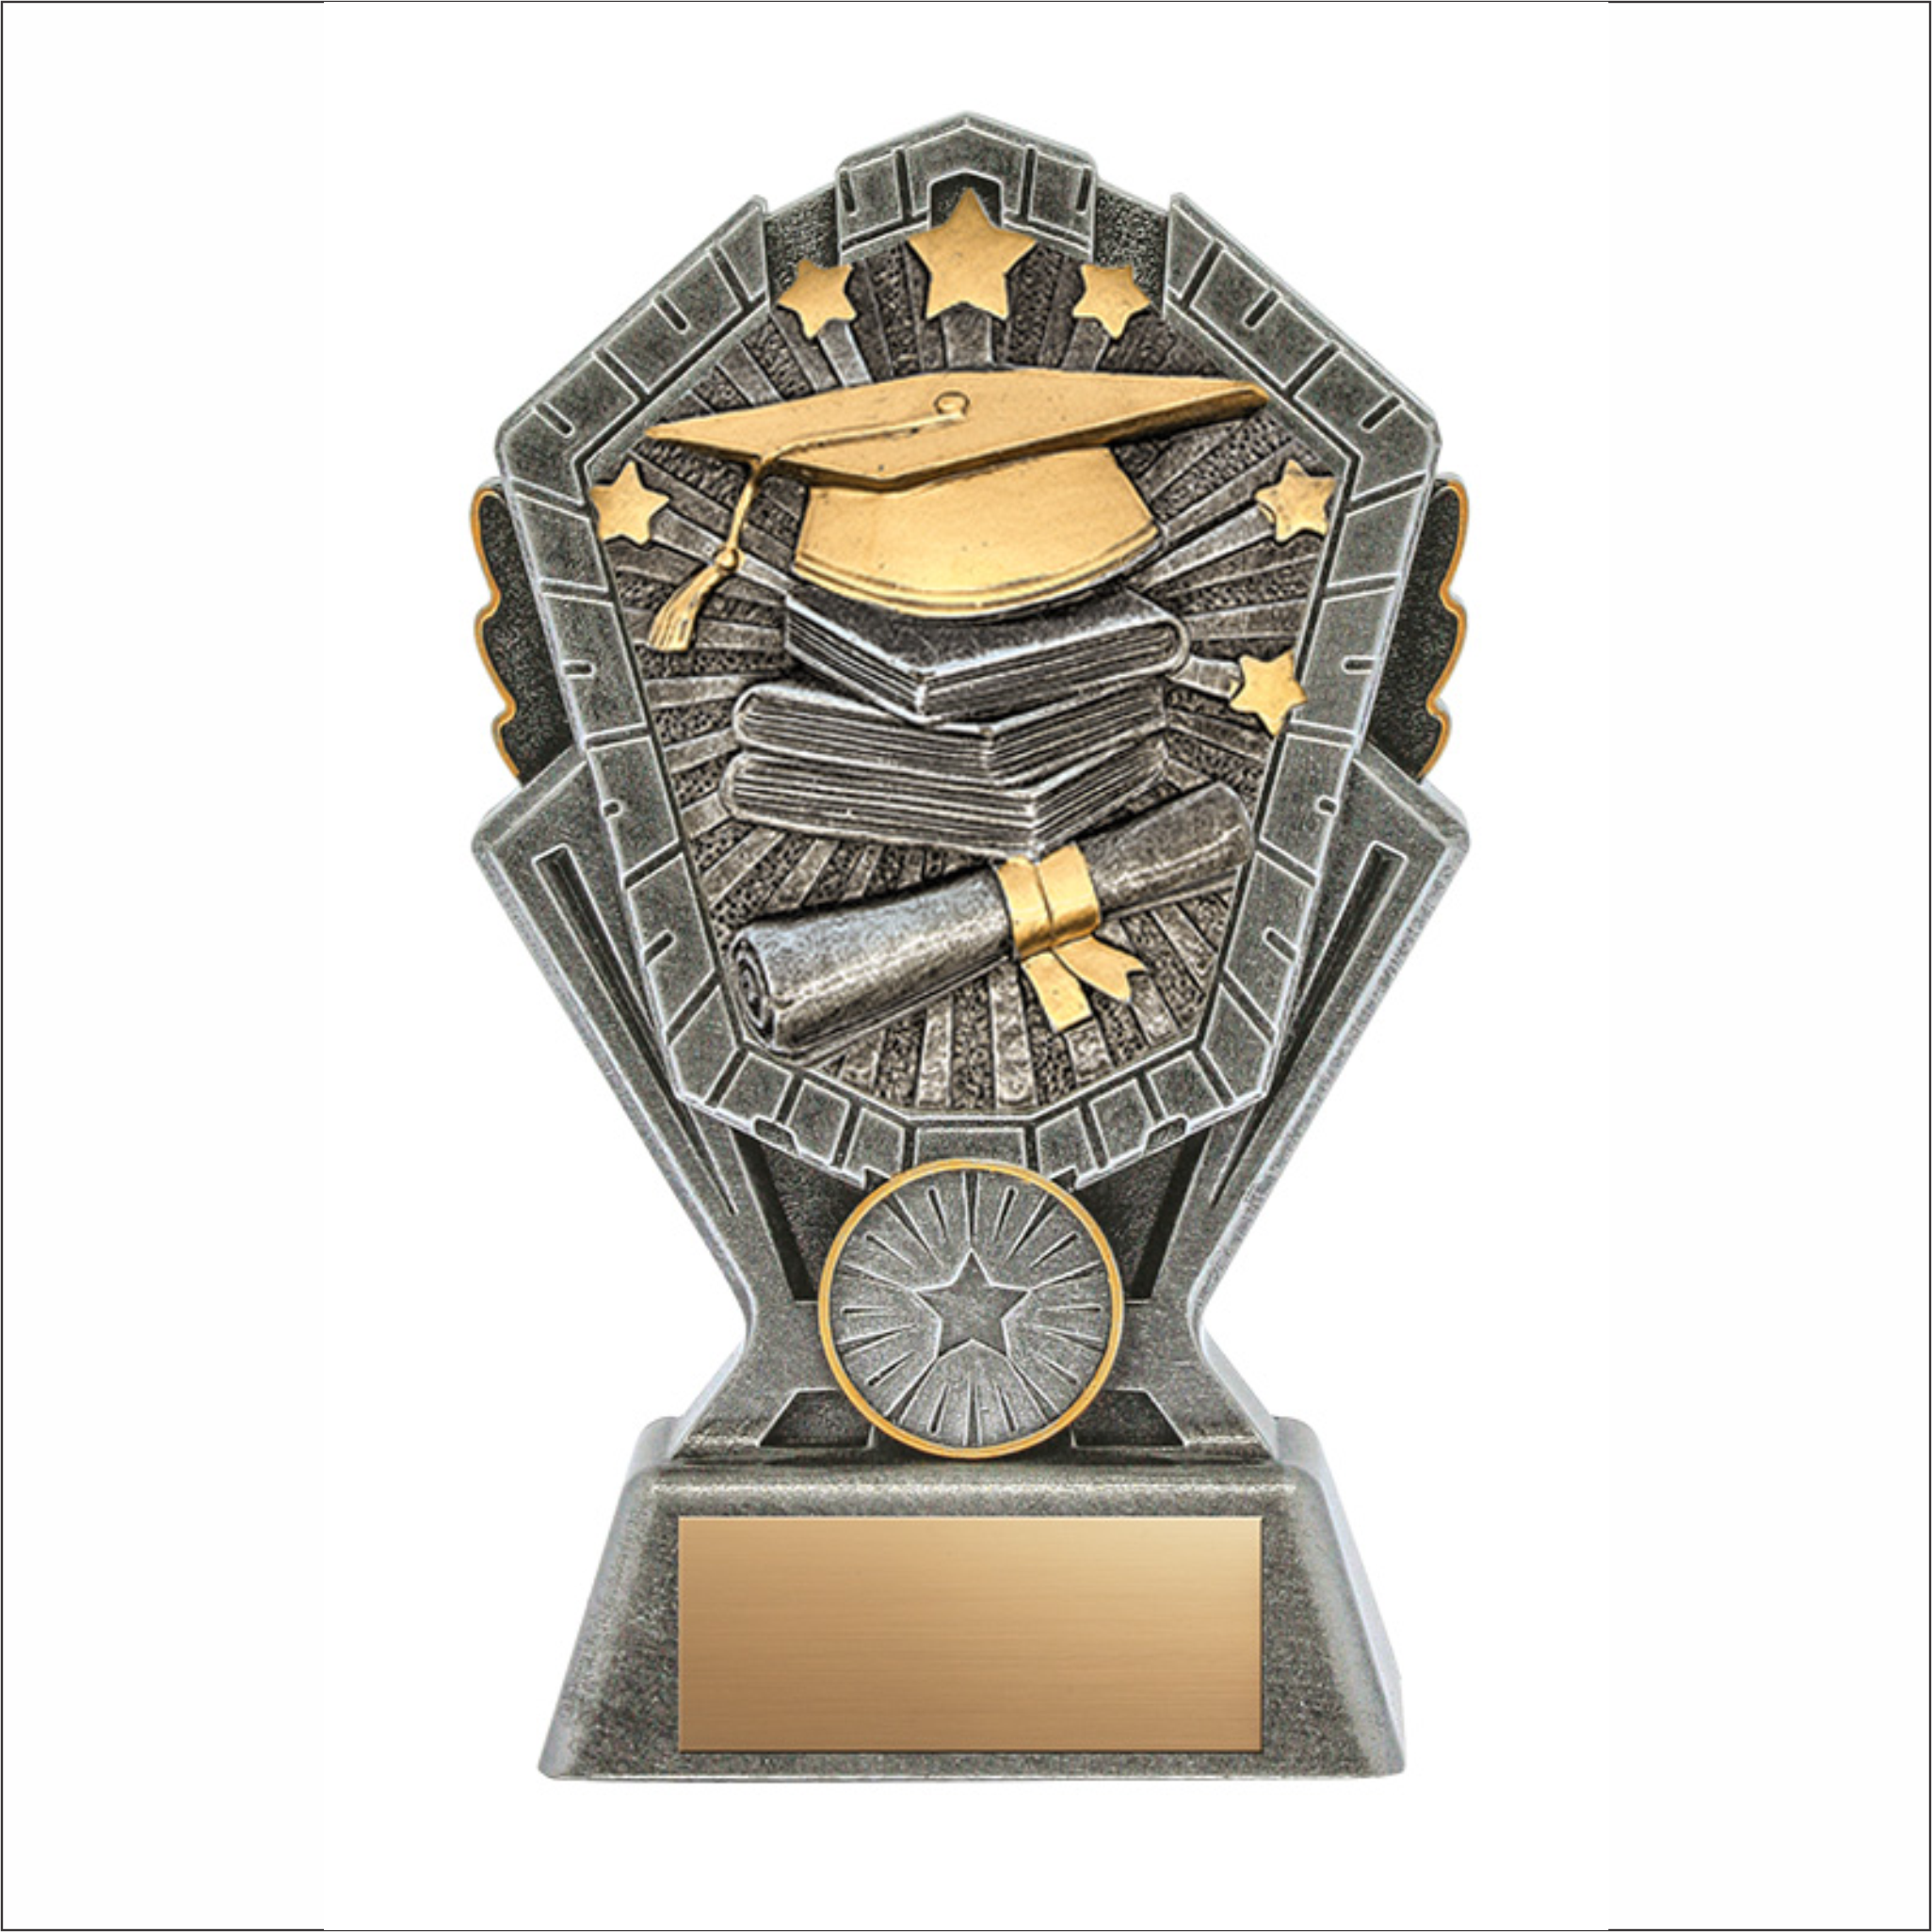 Graduation trophy - Cosmos series